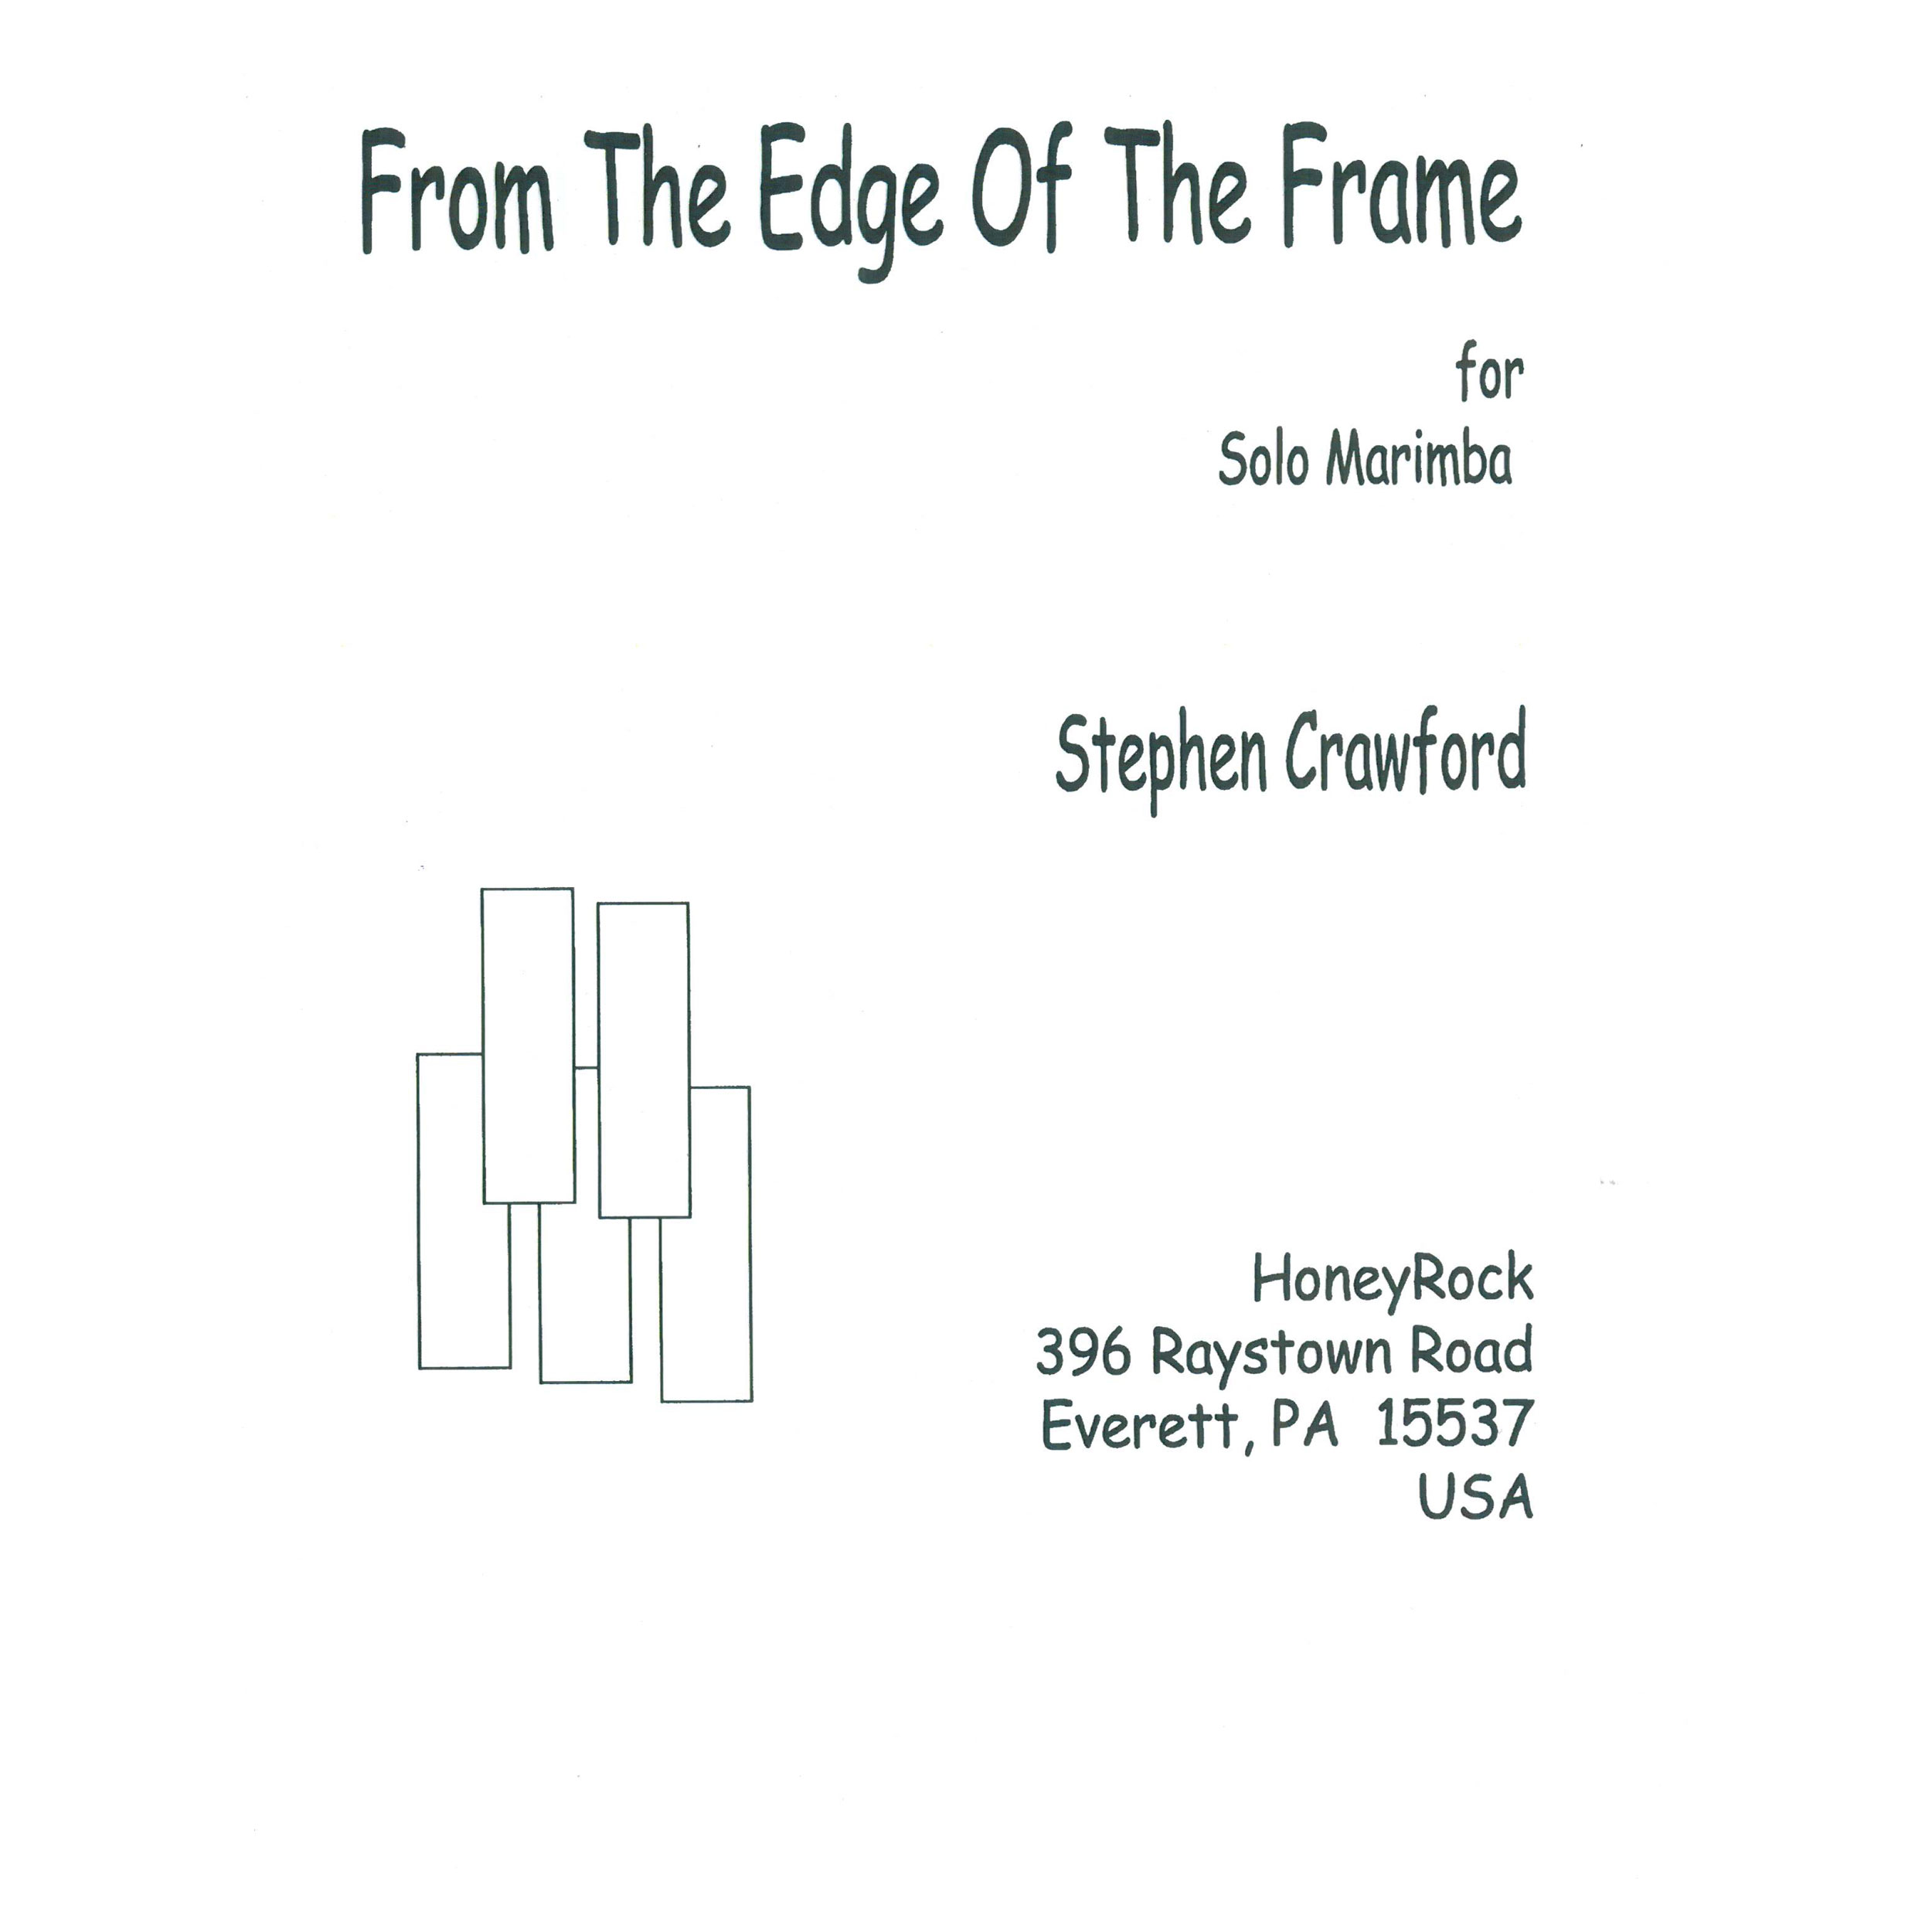 From the Edge of the Frame by Stephen Crawford